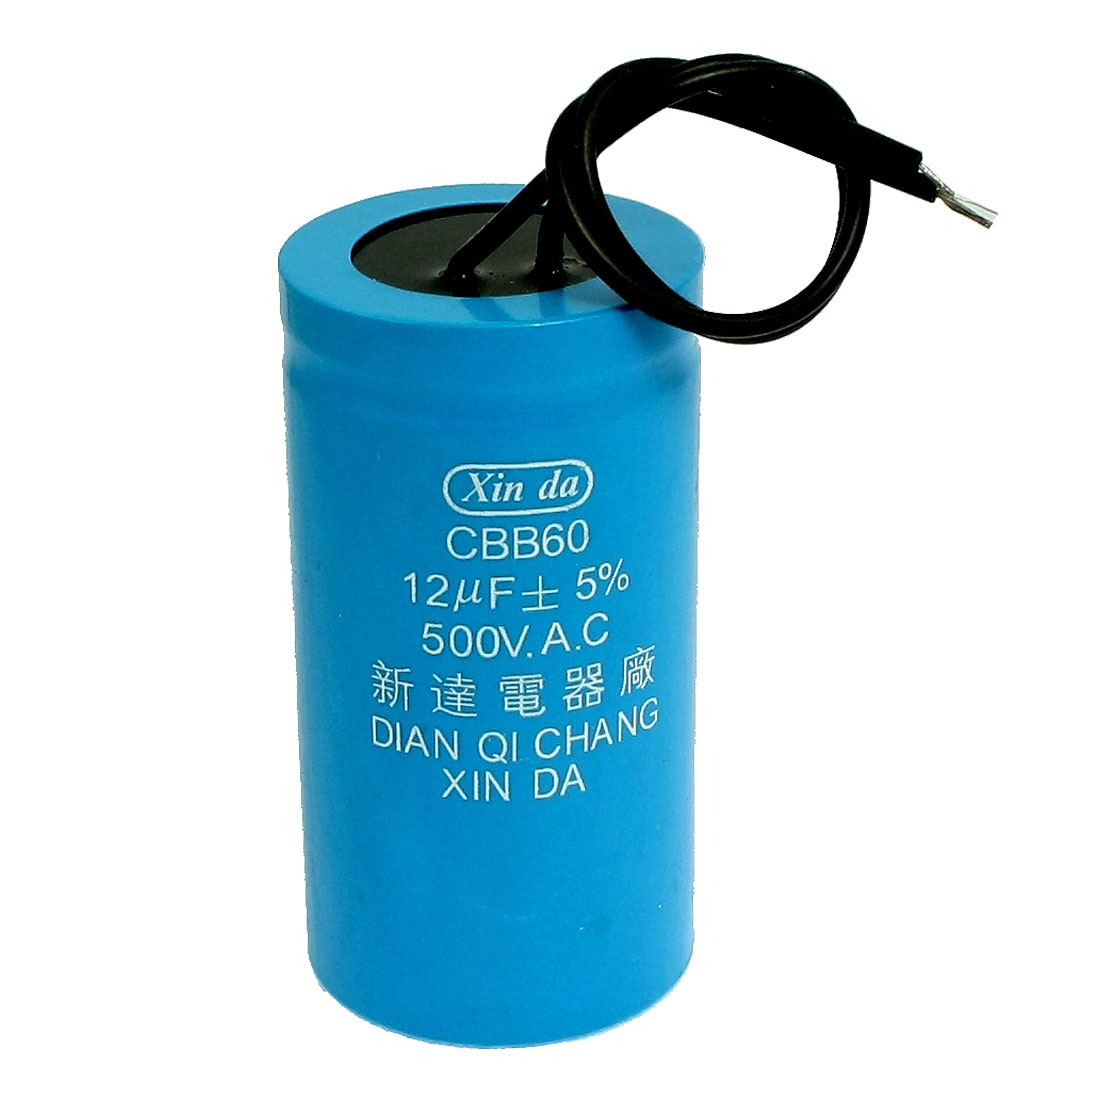 Black Wire Polypropylene Film 500VAC 12uF Capacitor CBB60 for Washing Machine